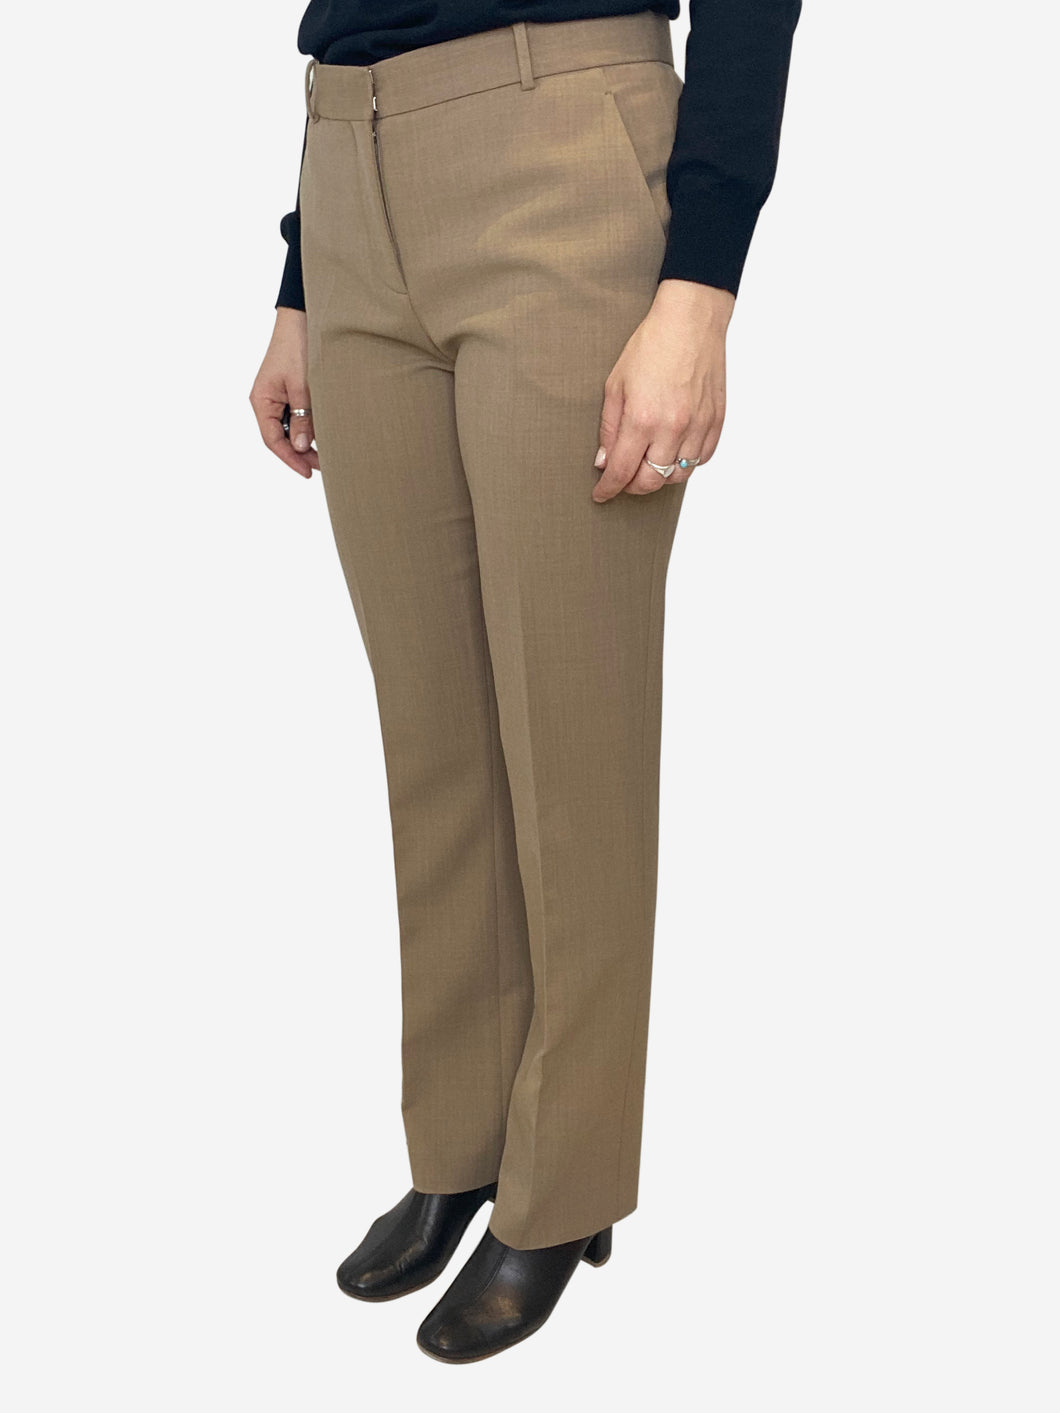 Beige tailored trousers- size UK 10